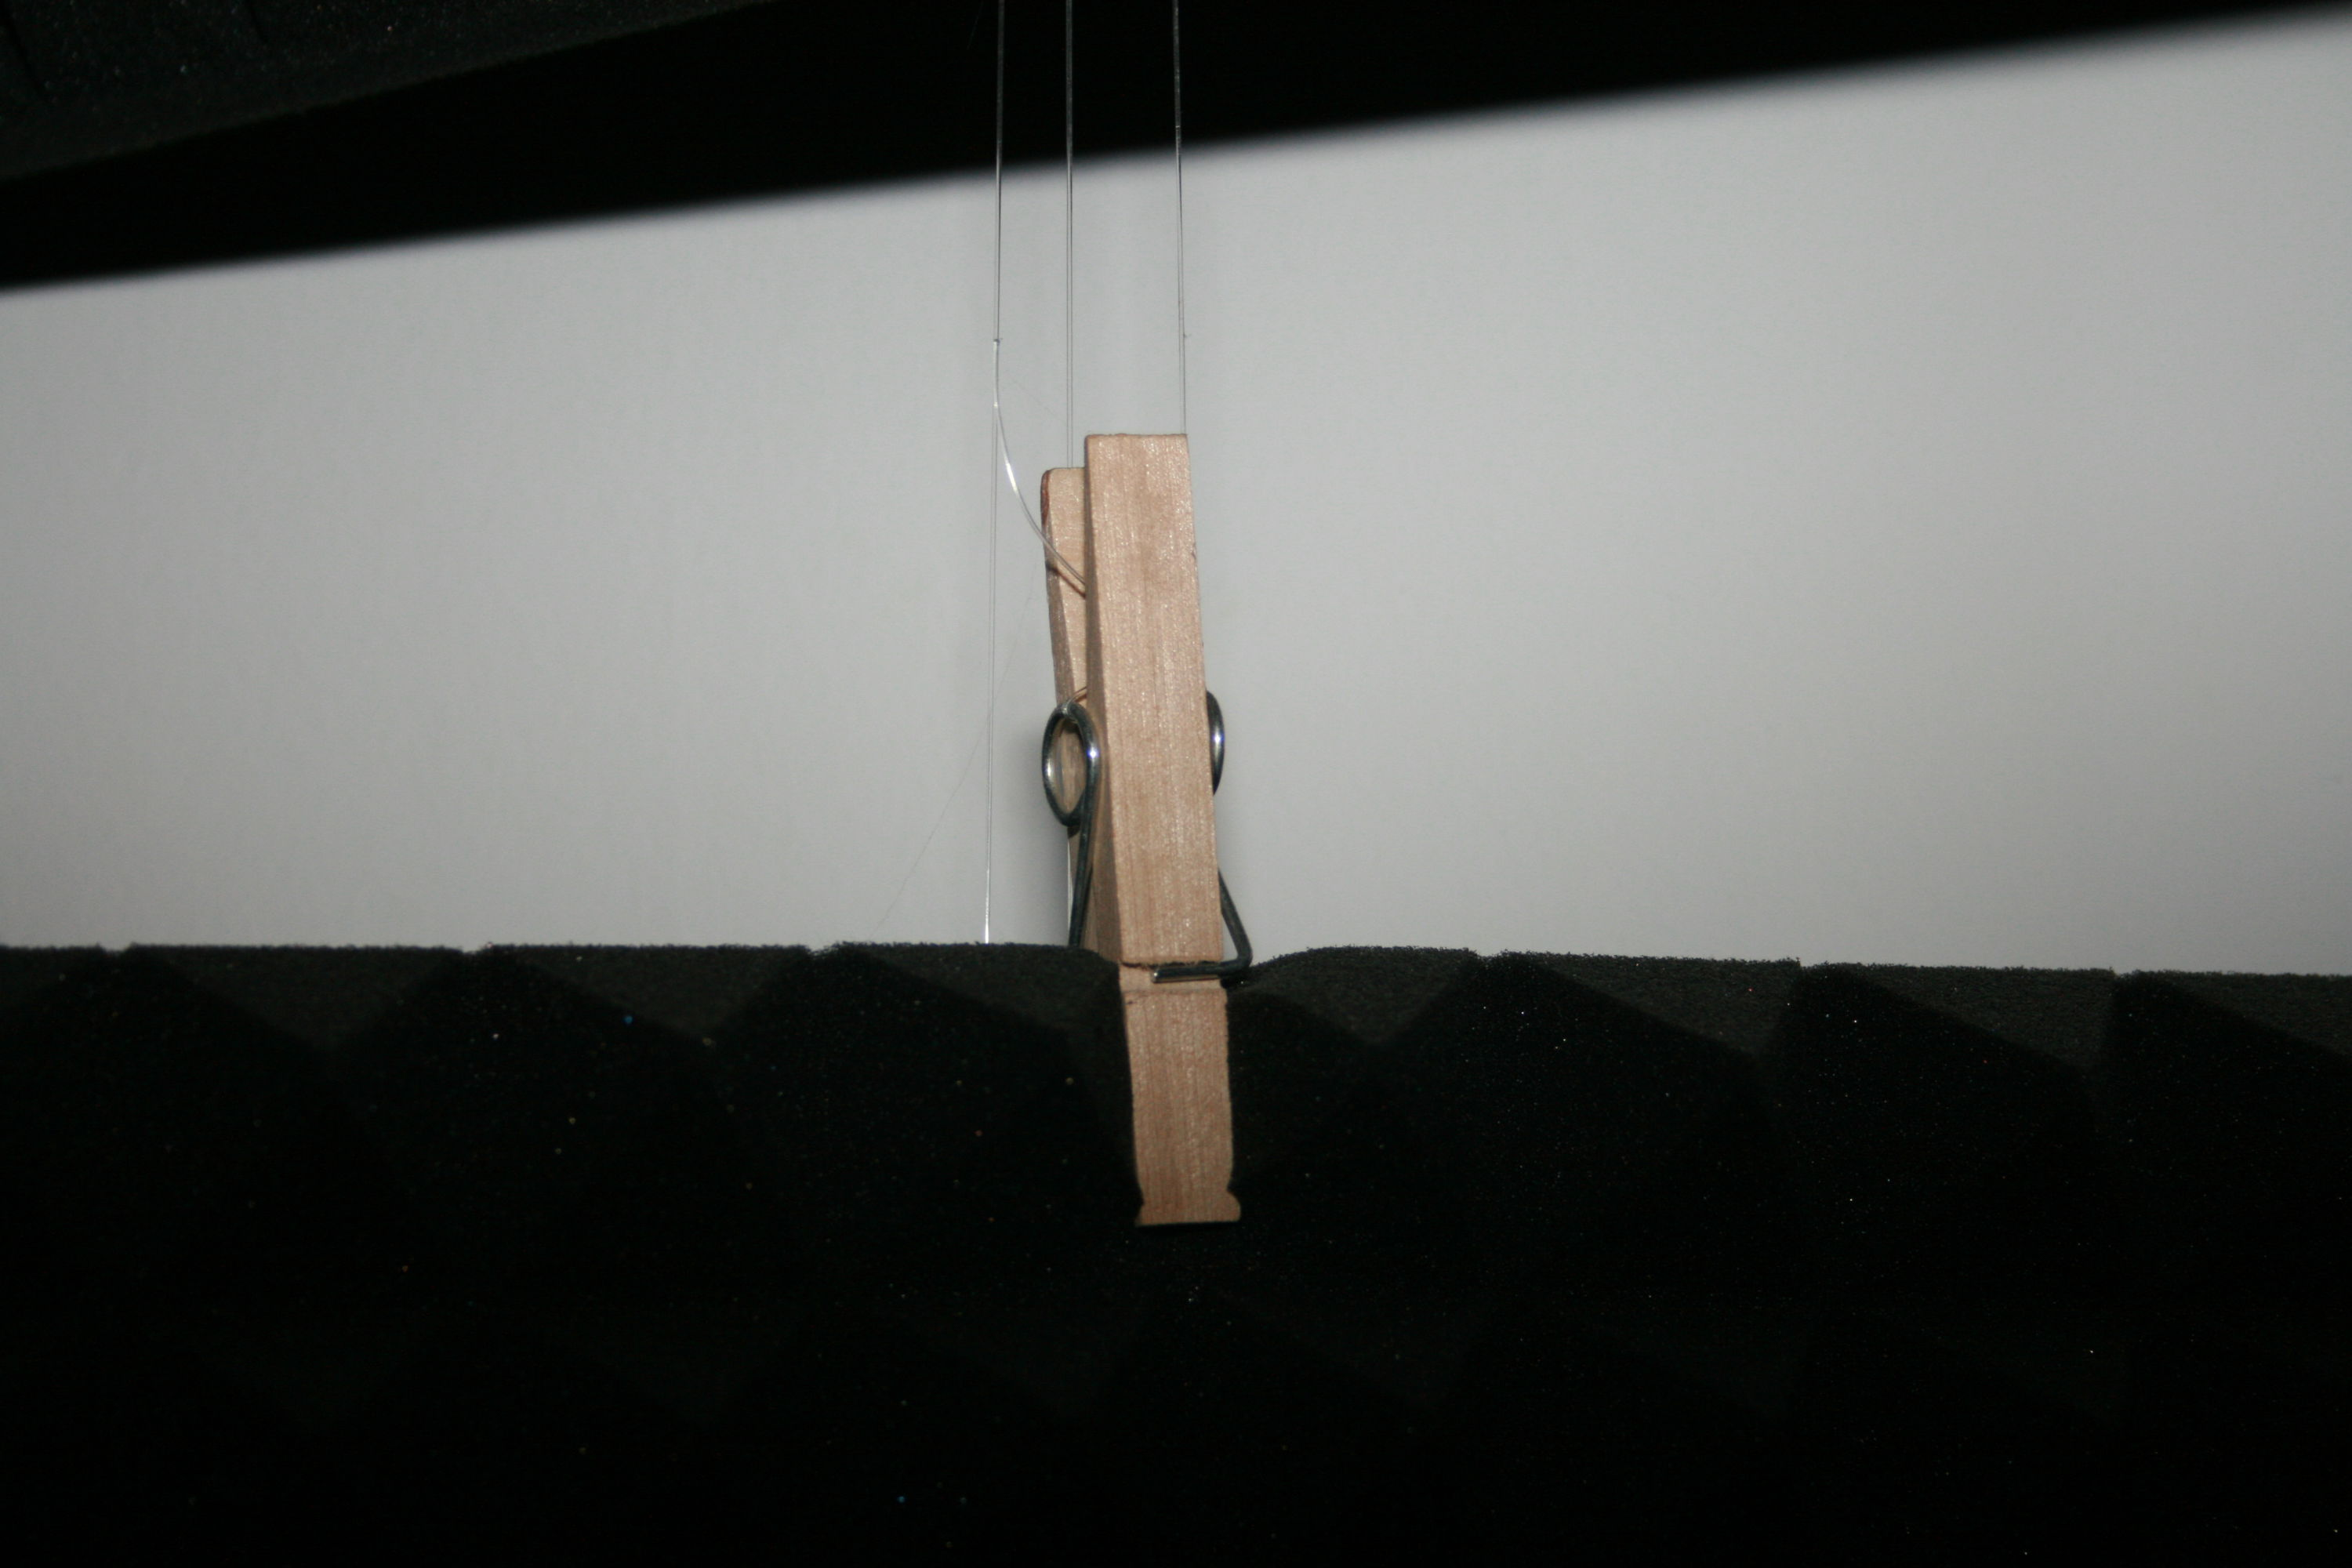 acoustic foam mat attached to a string with a pegs